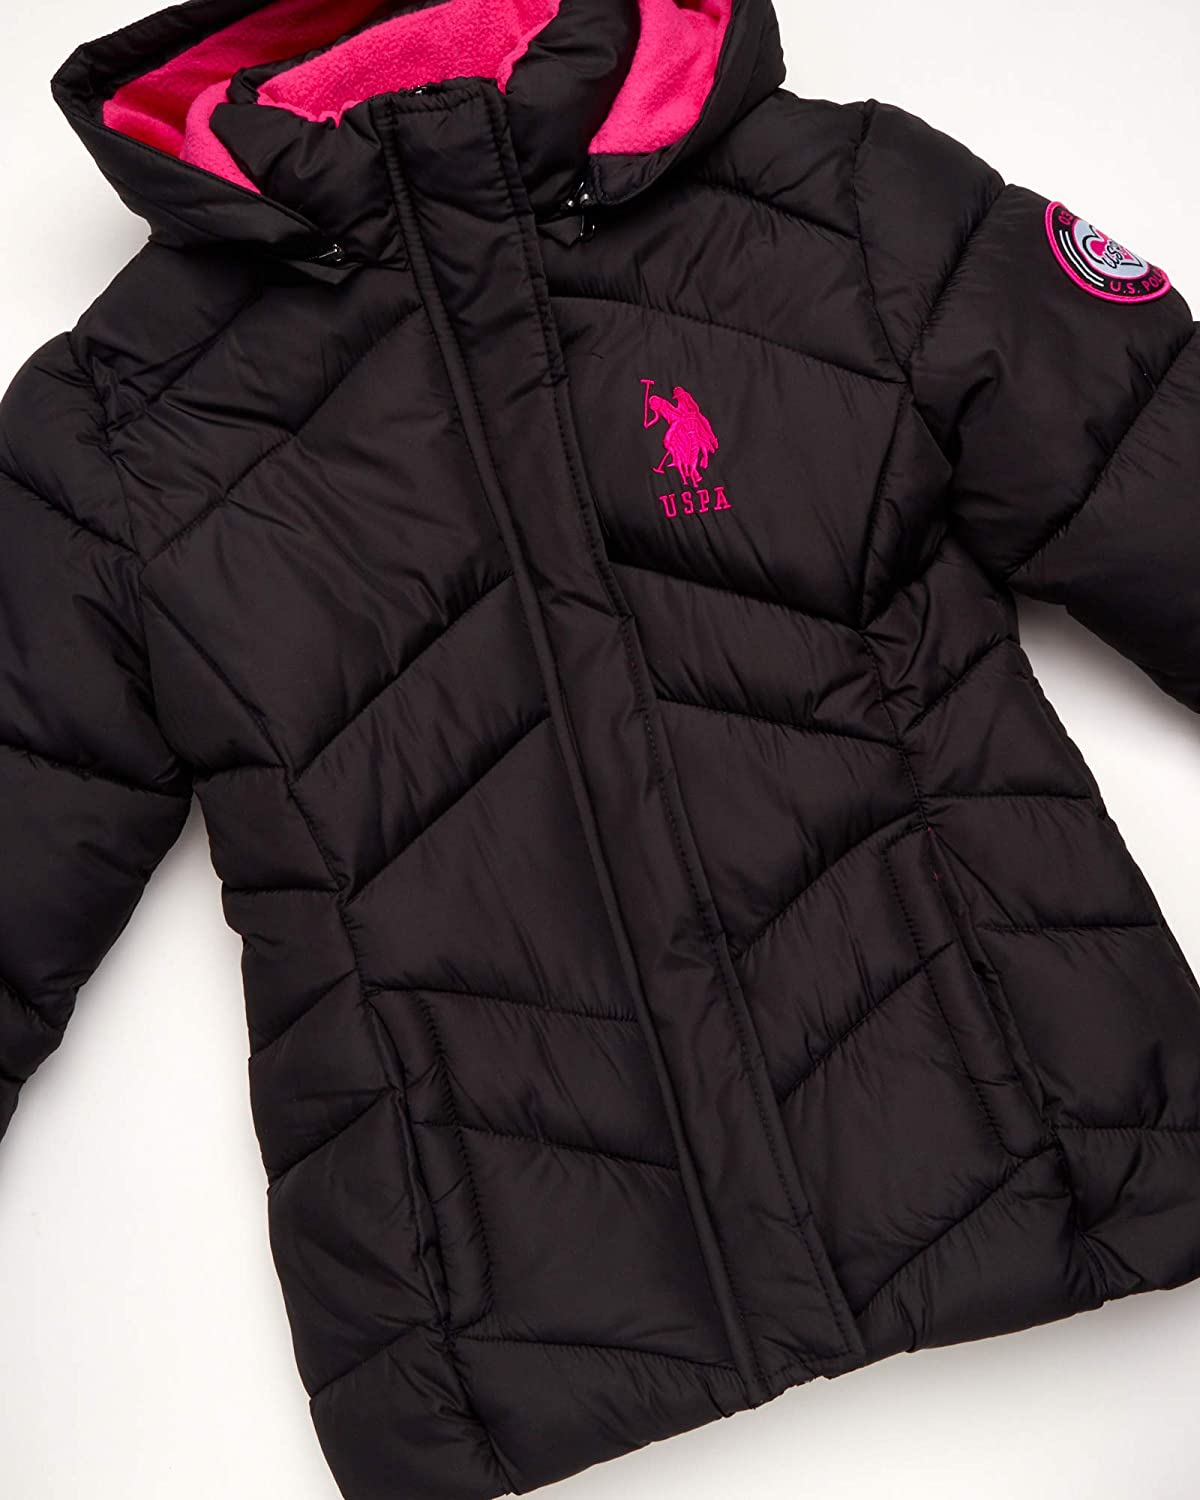 U.S Girls Puffer Bomber Jacket with Full Polar Fleece Lining and Removable Fur Trim Polo Assn